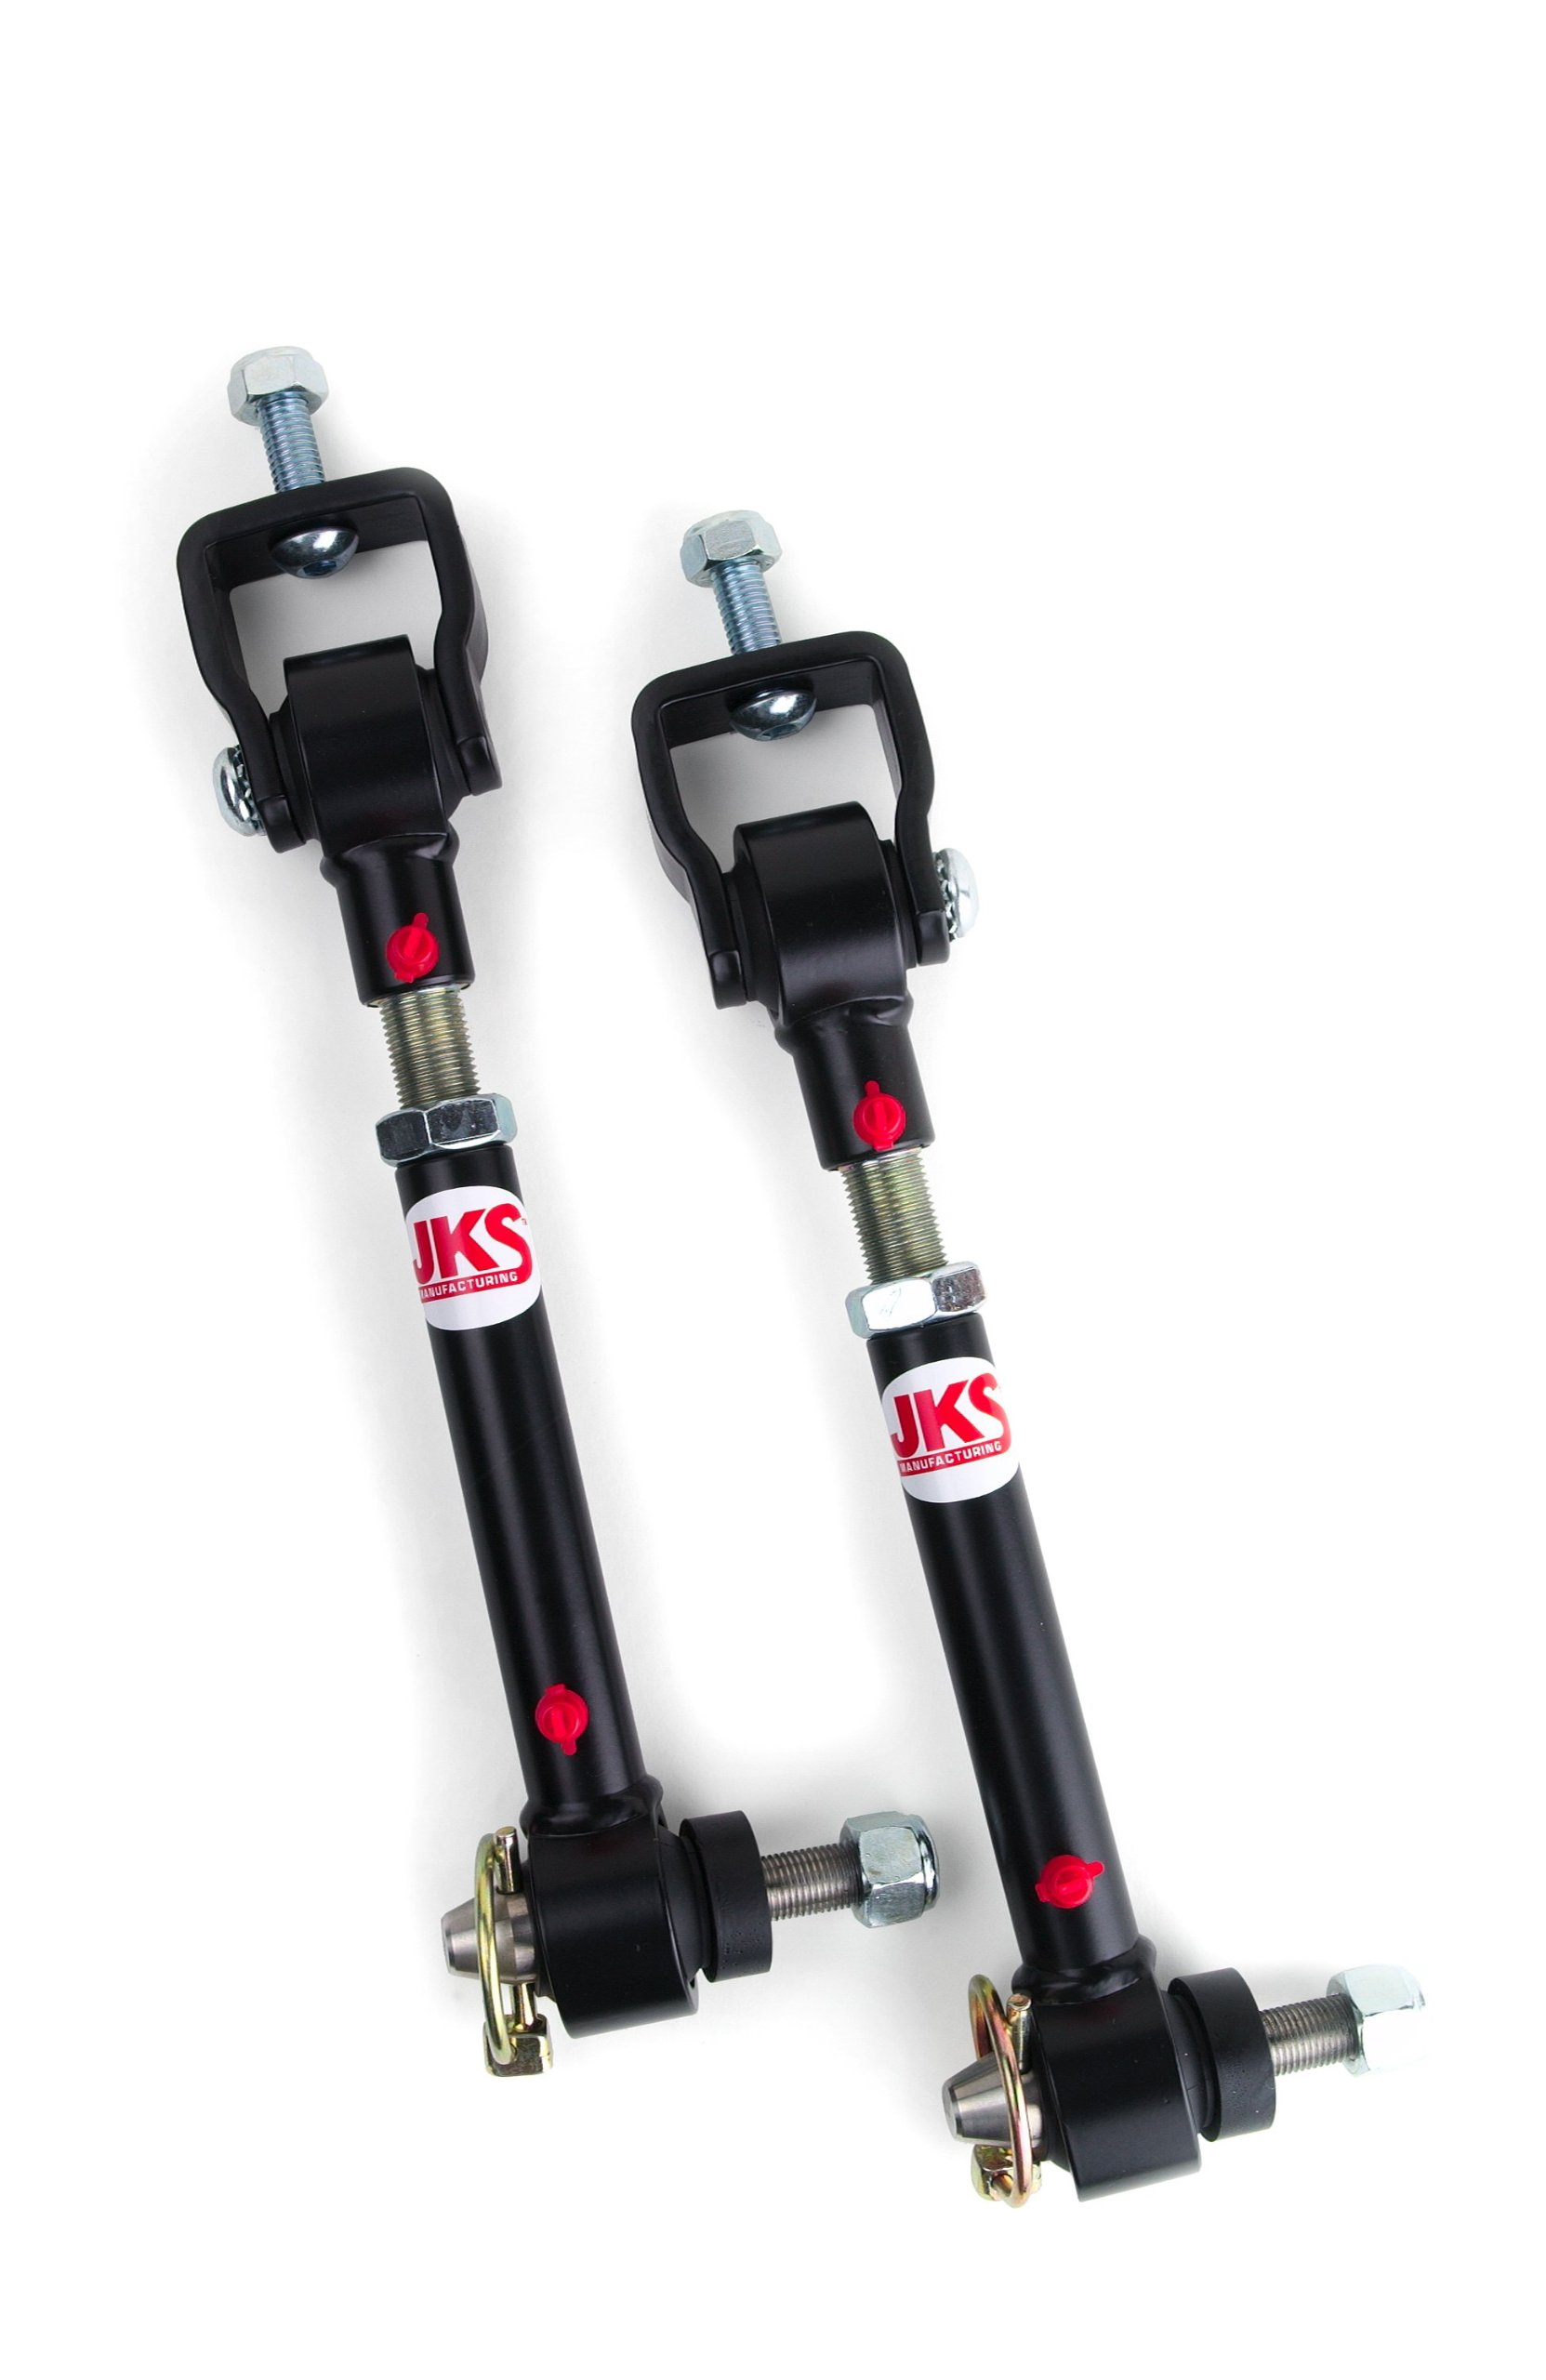 JKS 2000 OE Replacement Front Swaybar Quicker Disconnect System for Jeep TJ by JKS